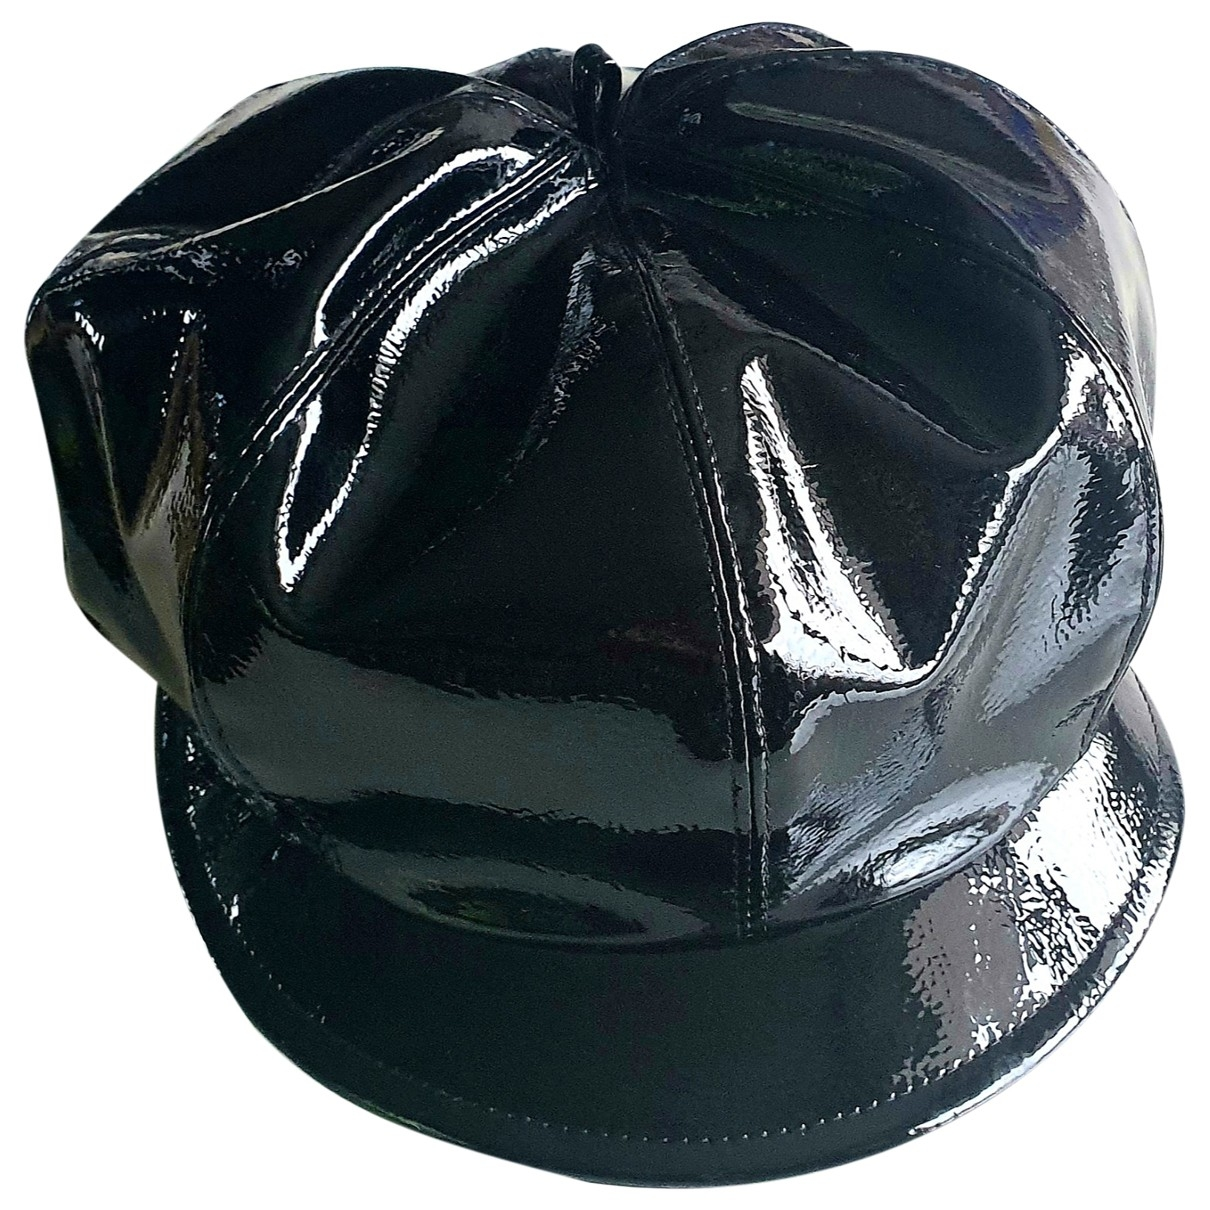 Non Signé / Unsigned \N Black \N hat for Women M International